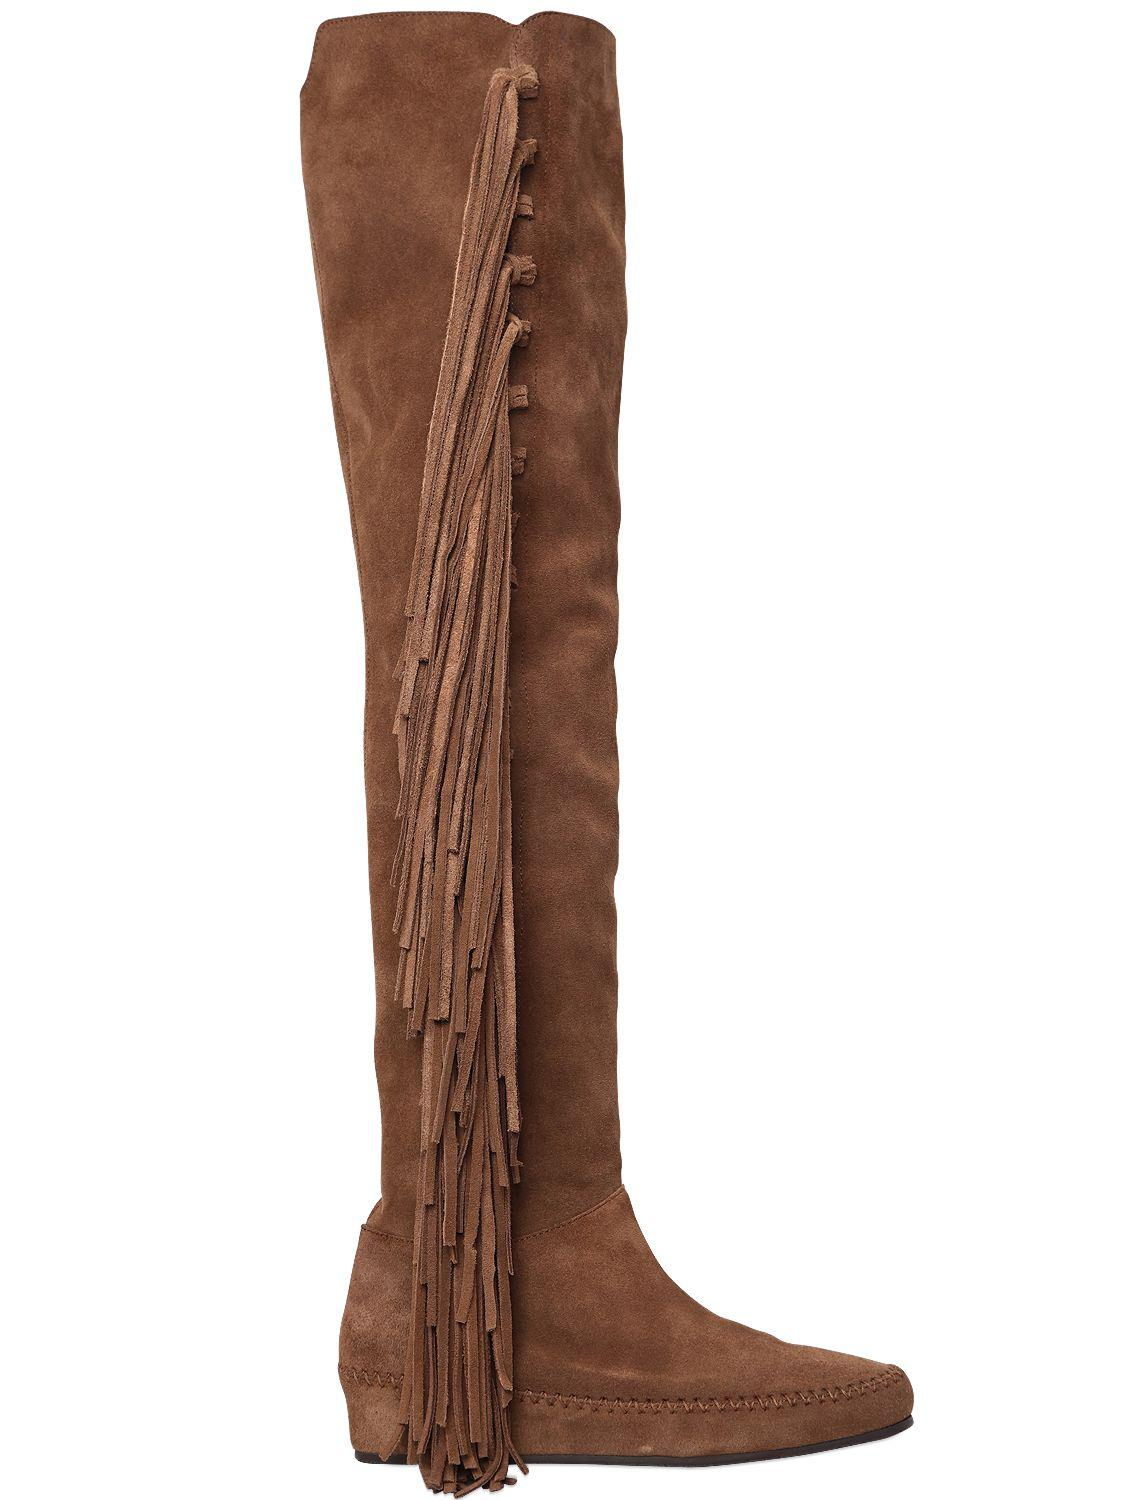 Etro 30MM FRINGED SUEDE OVER THE KNEE BOOTS cFqOKwMaLK